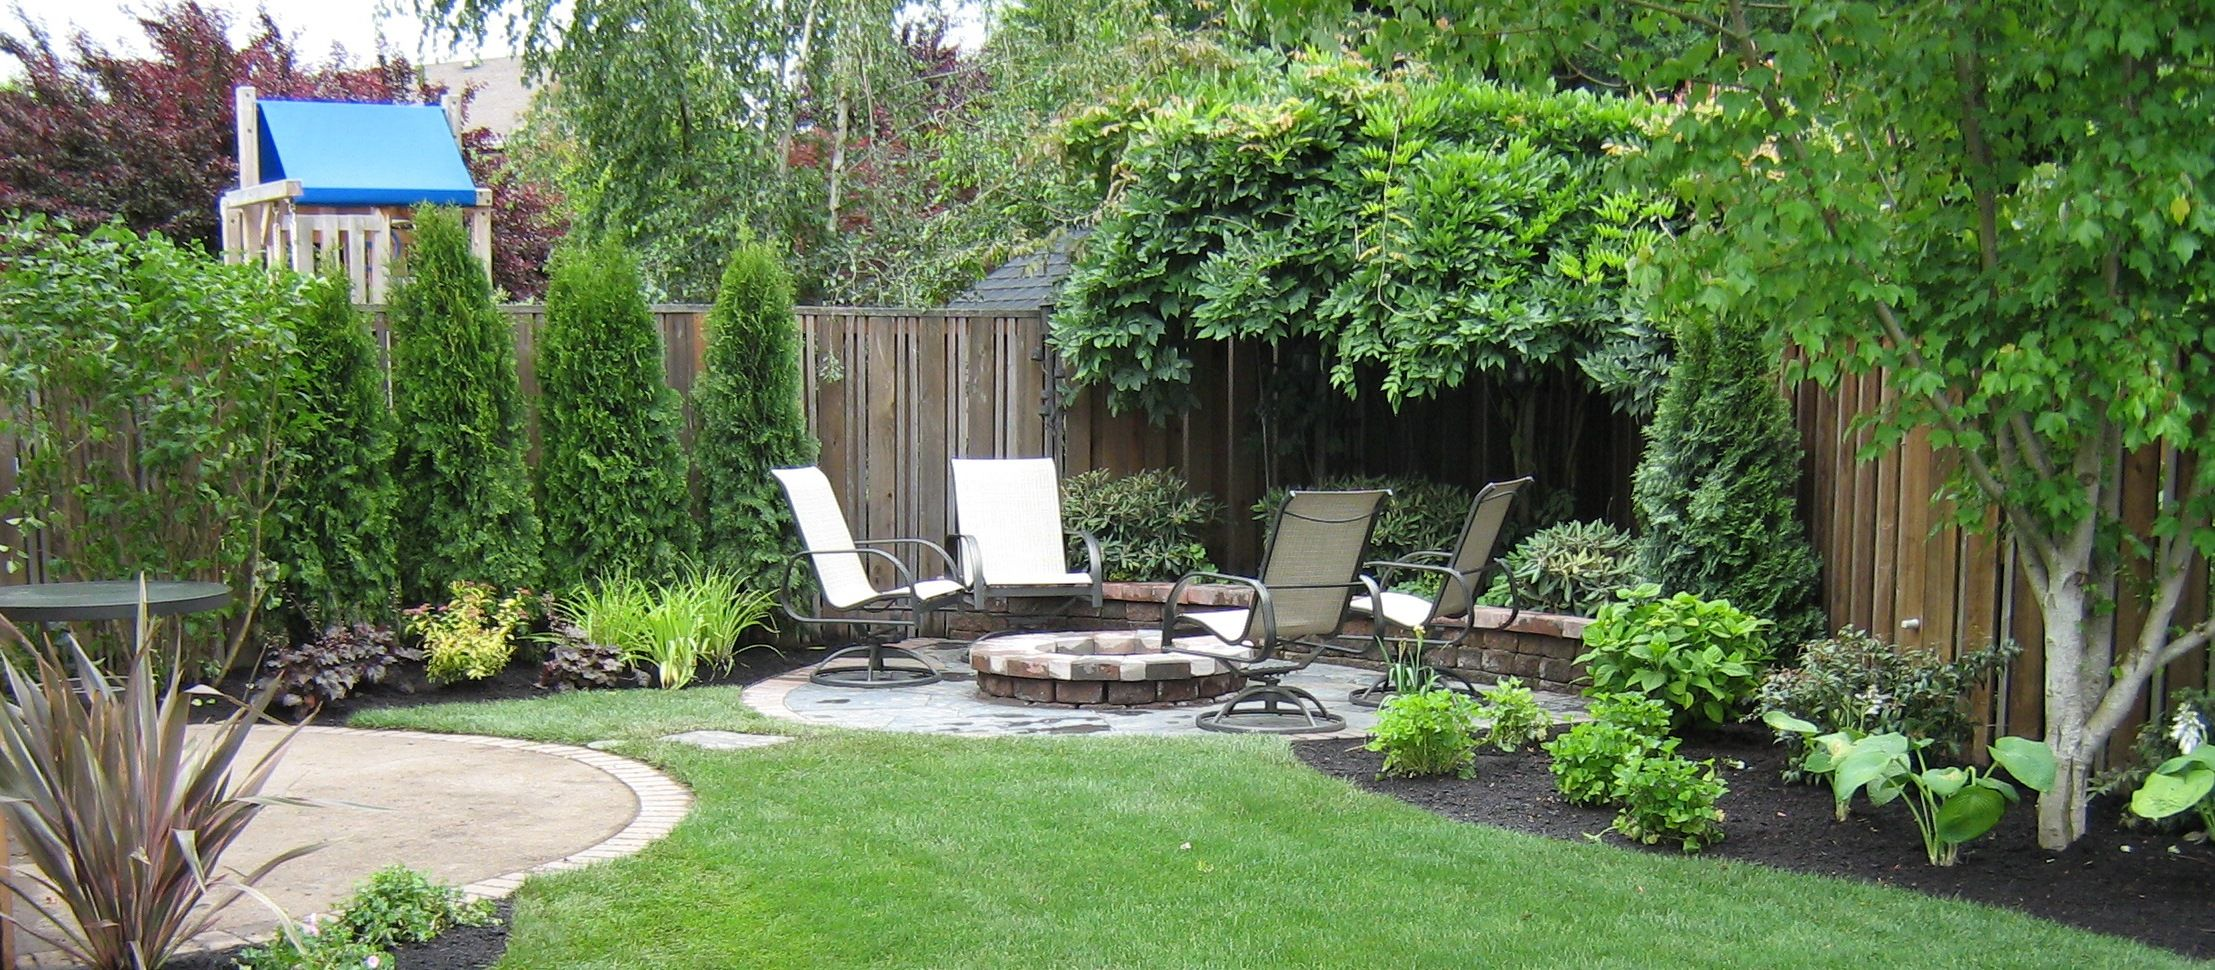 Small backyard landscaping ideas photos garden design for Gartengestaltung wege